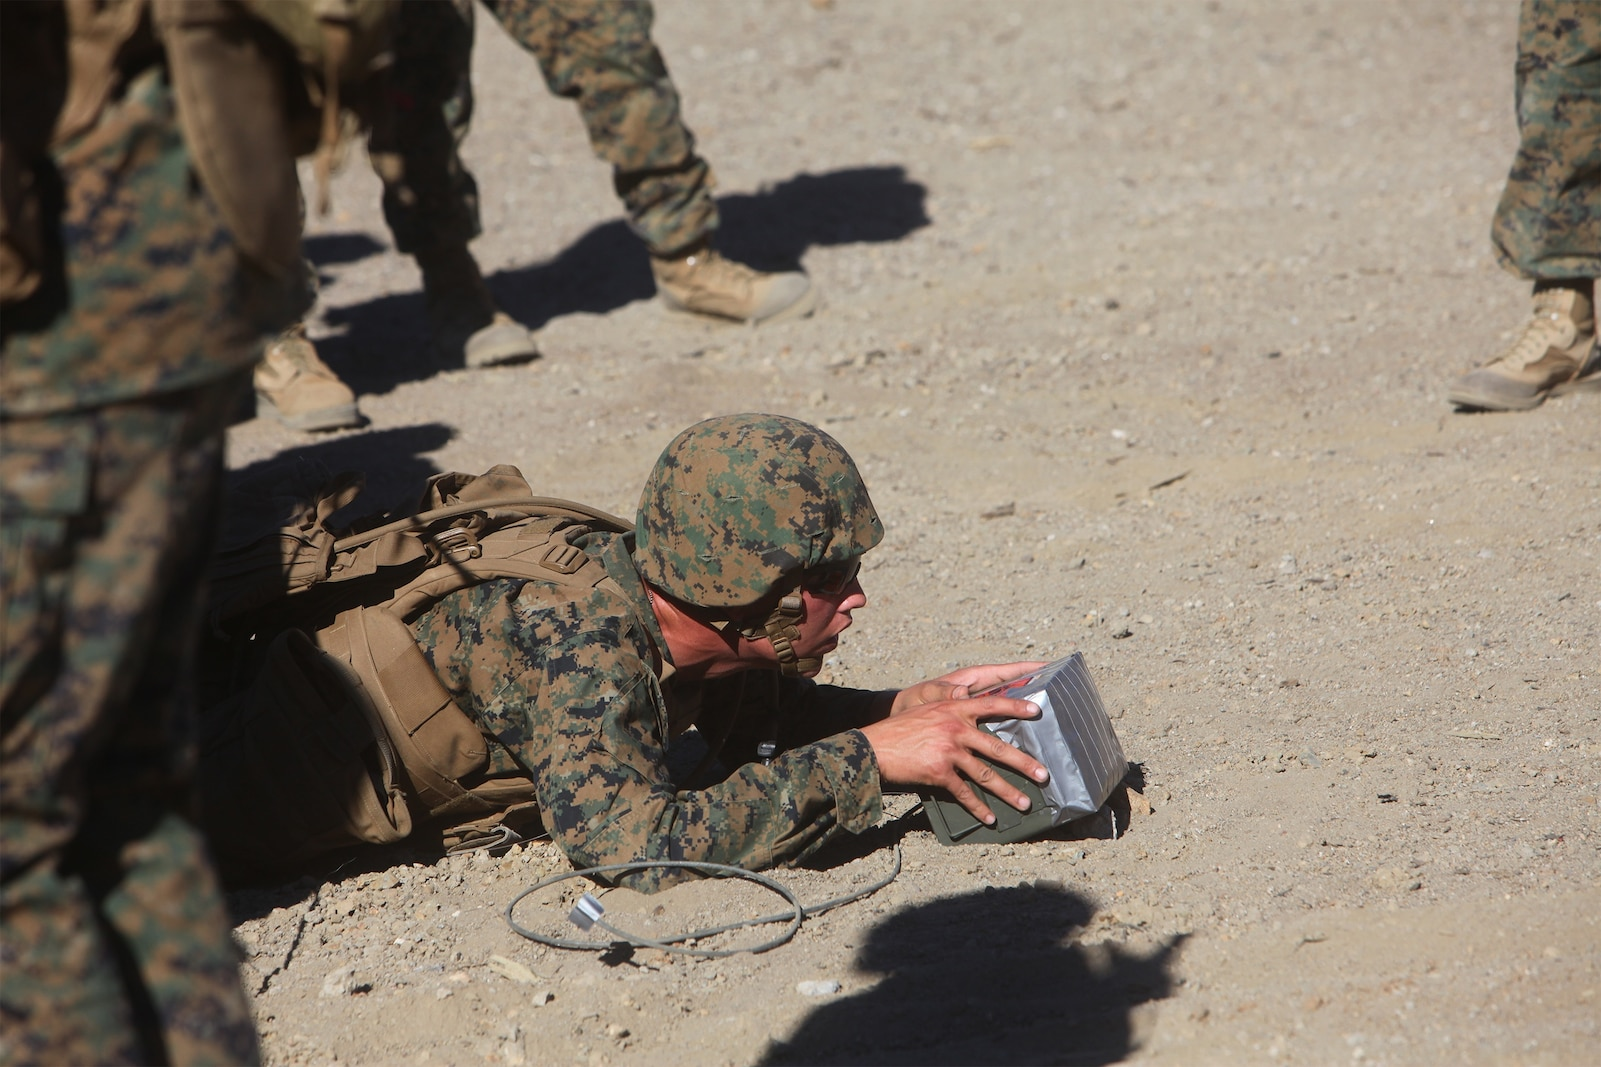 A Marine with Combat Logistics Regiment 17, 1st Marine Logistics Group, emplaces a field-expedient, shaped-charge explosive during a basic demolitions course aboard Camp Pendleton, Calif., Nov. 14, 2013. Approximately 44 Marines from 1st MLG participated in the three-day training course and received instruction on demolitions as well as combat life saving techniques, patrolling and radio operations.